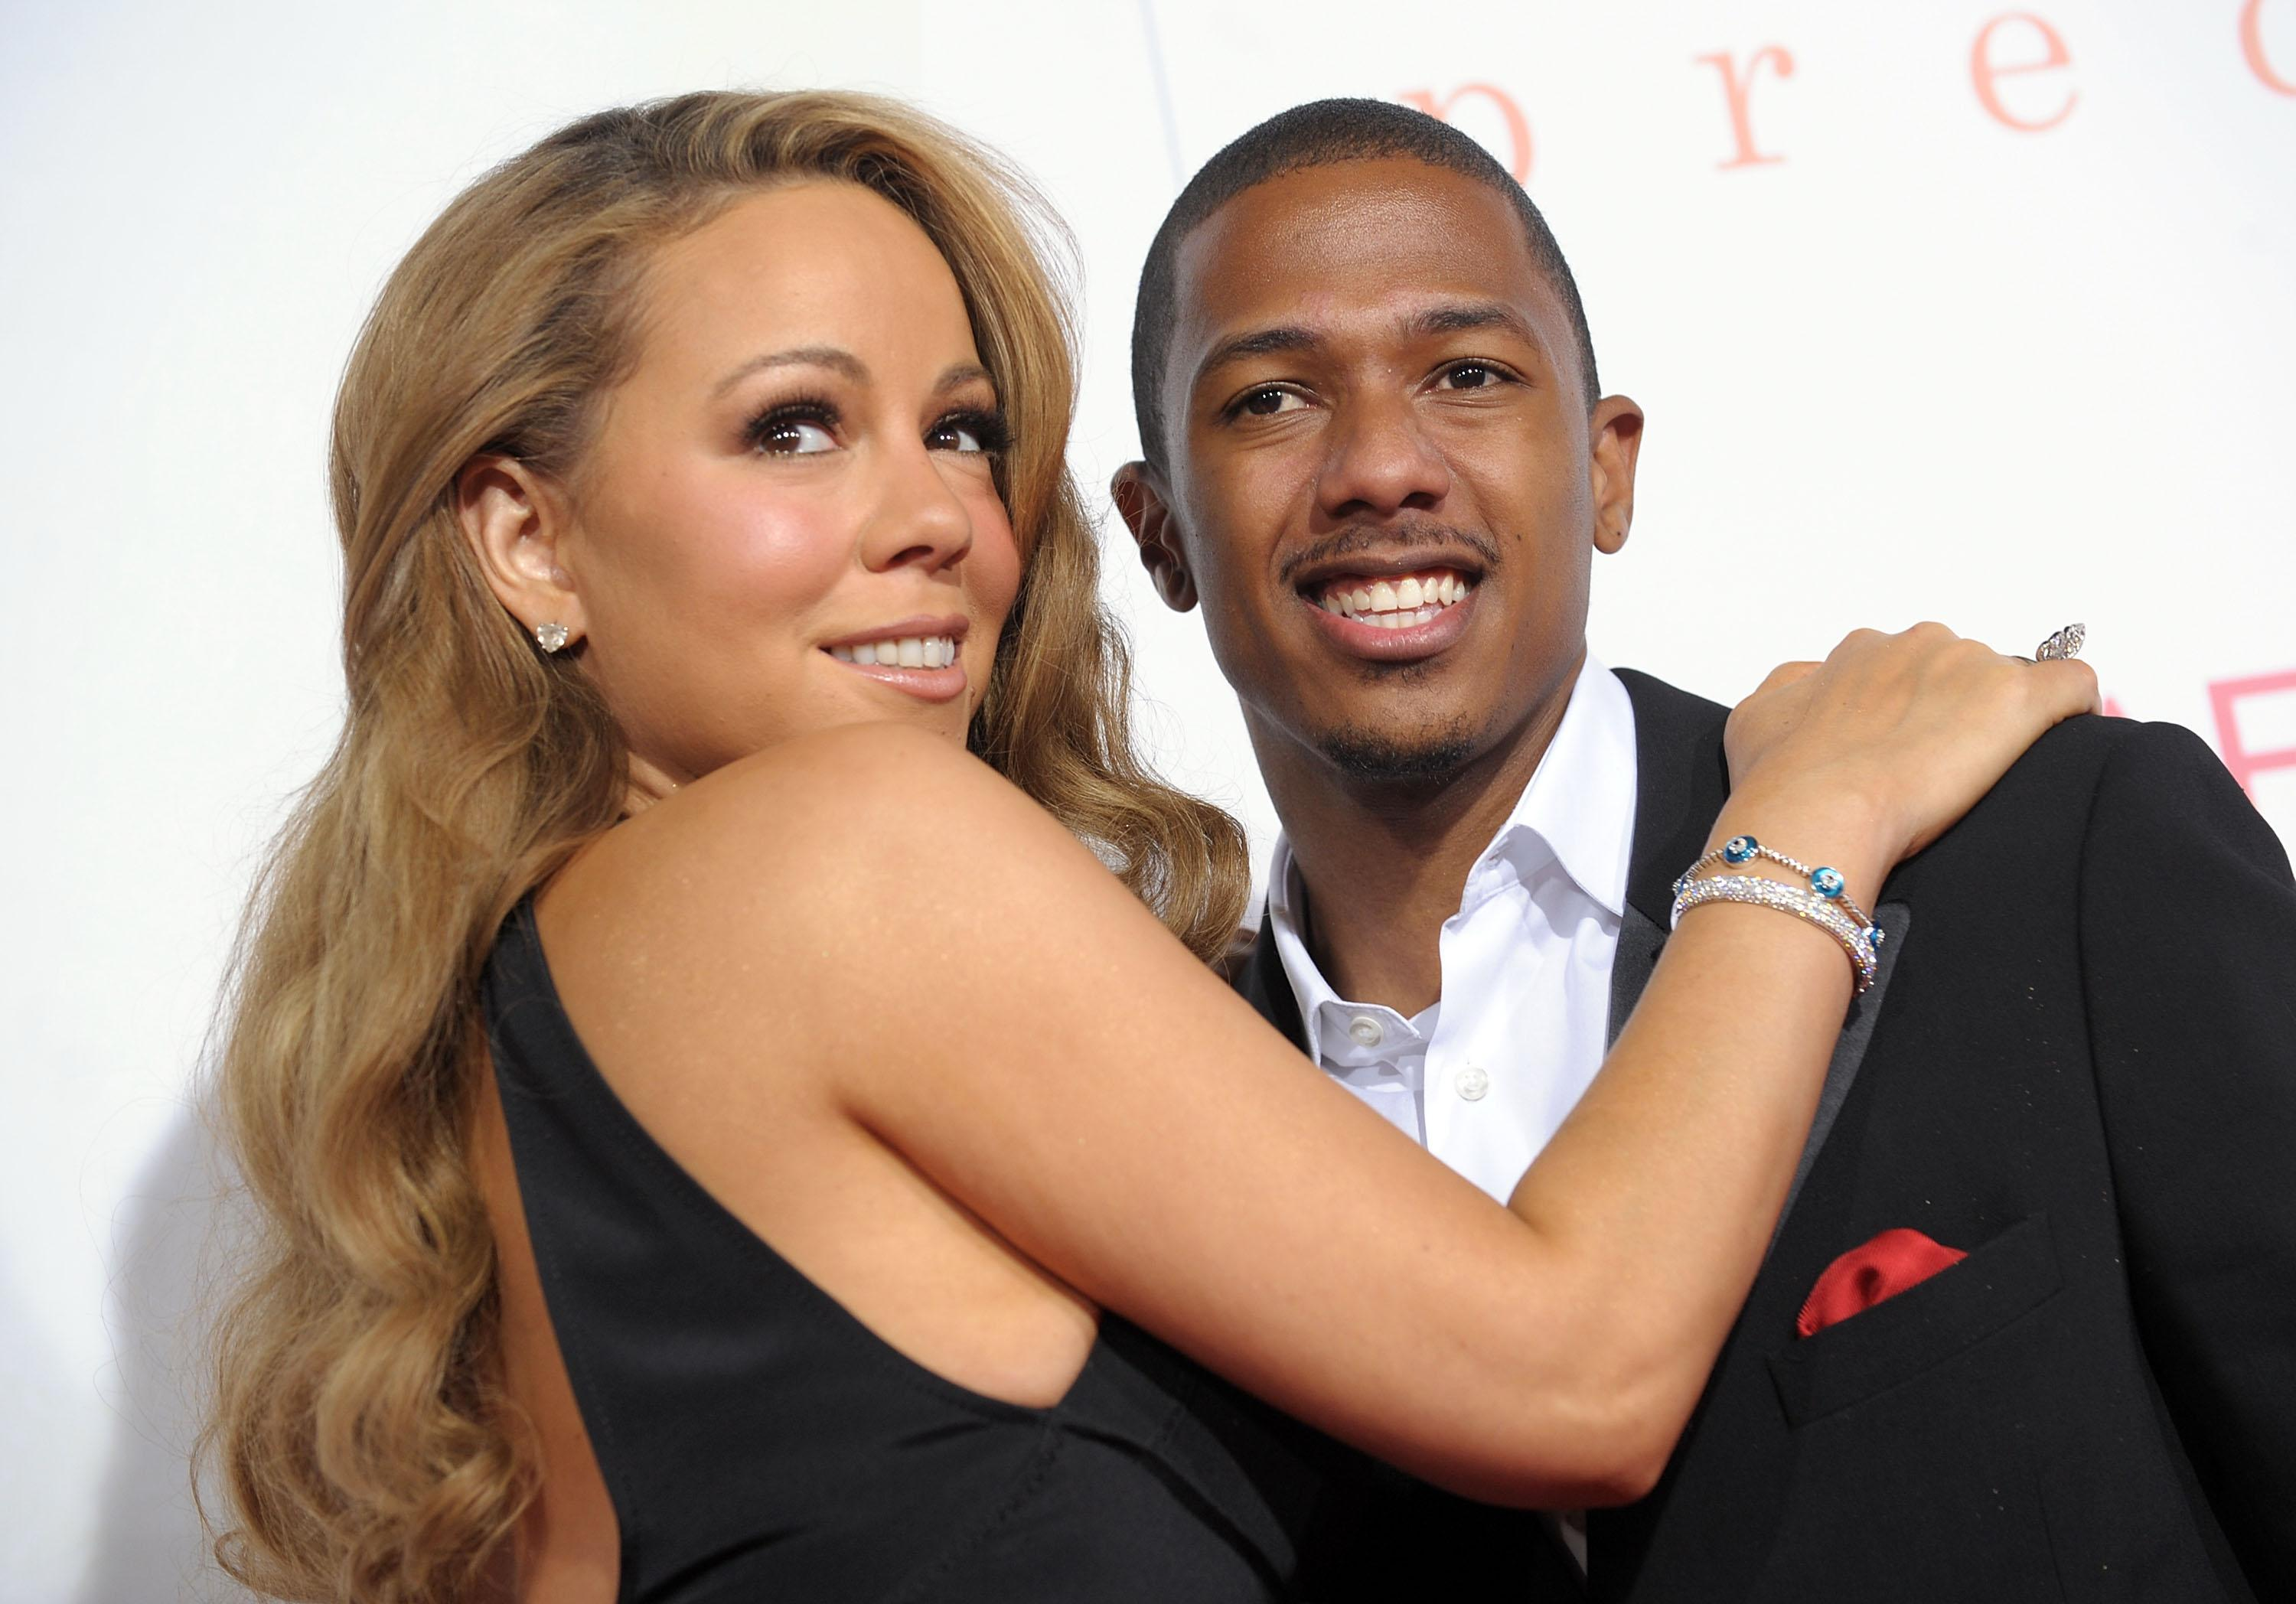 mariah-carey-nick-cannon-engagement-1531337085066-1531337087966.jpg